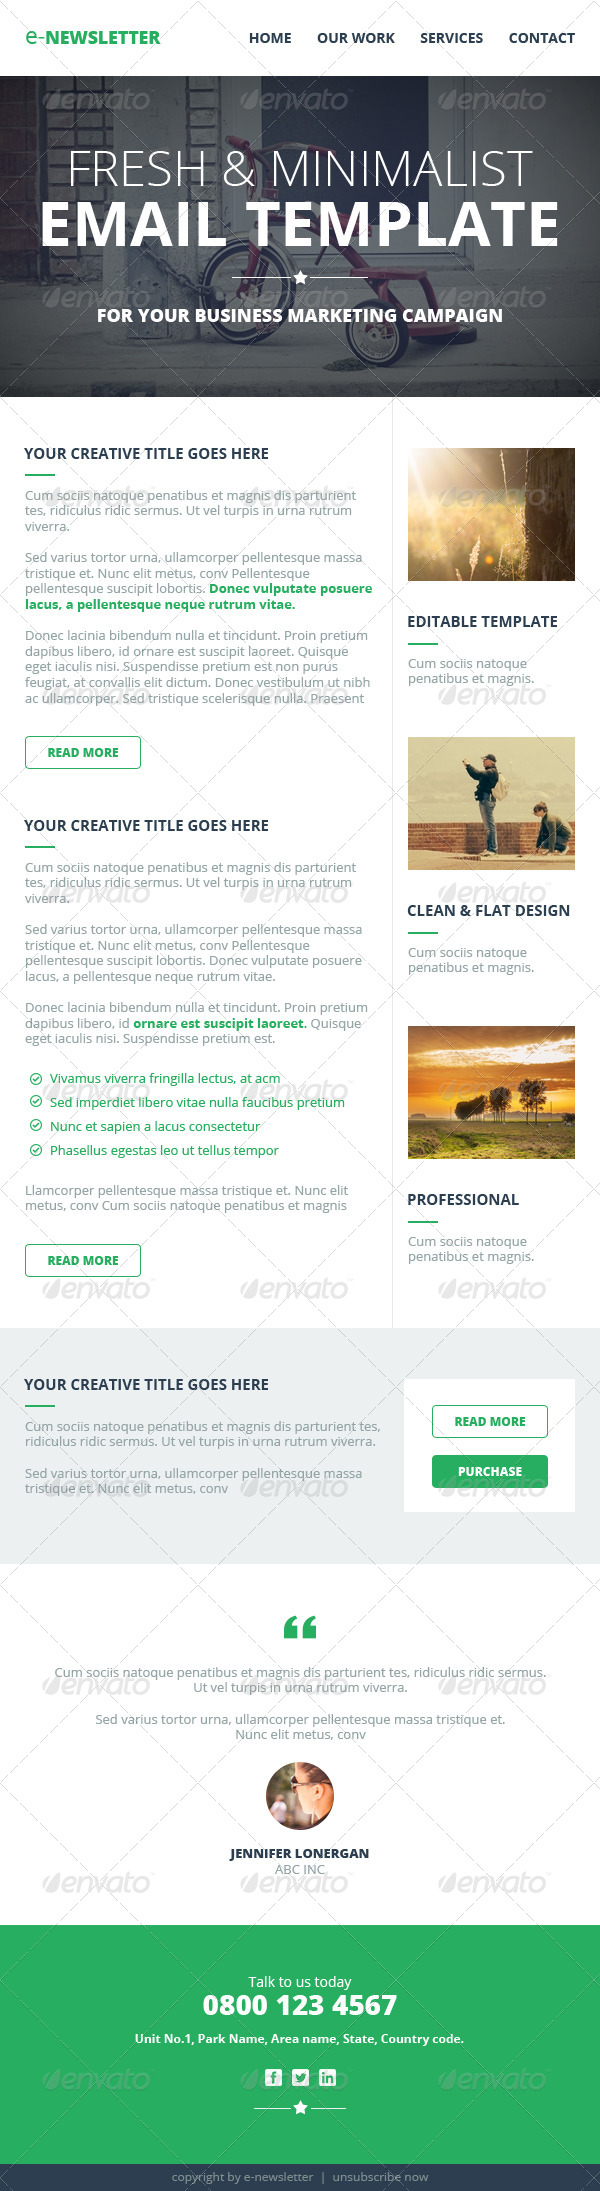 Multipurpose E Newsletter Email Template By Webduck Graphicriver